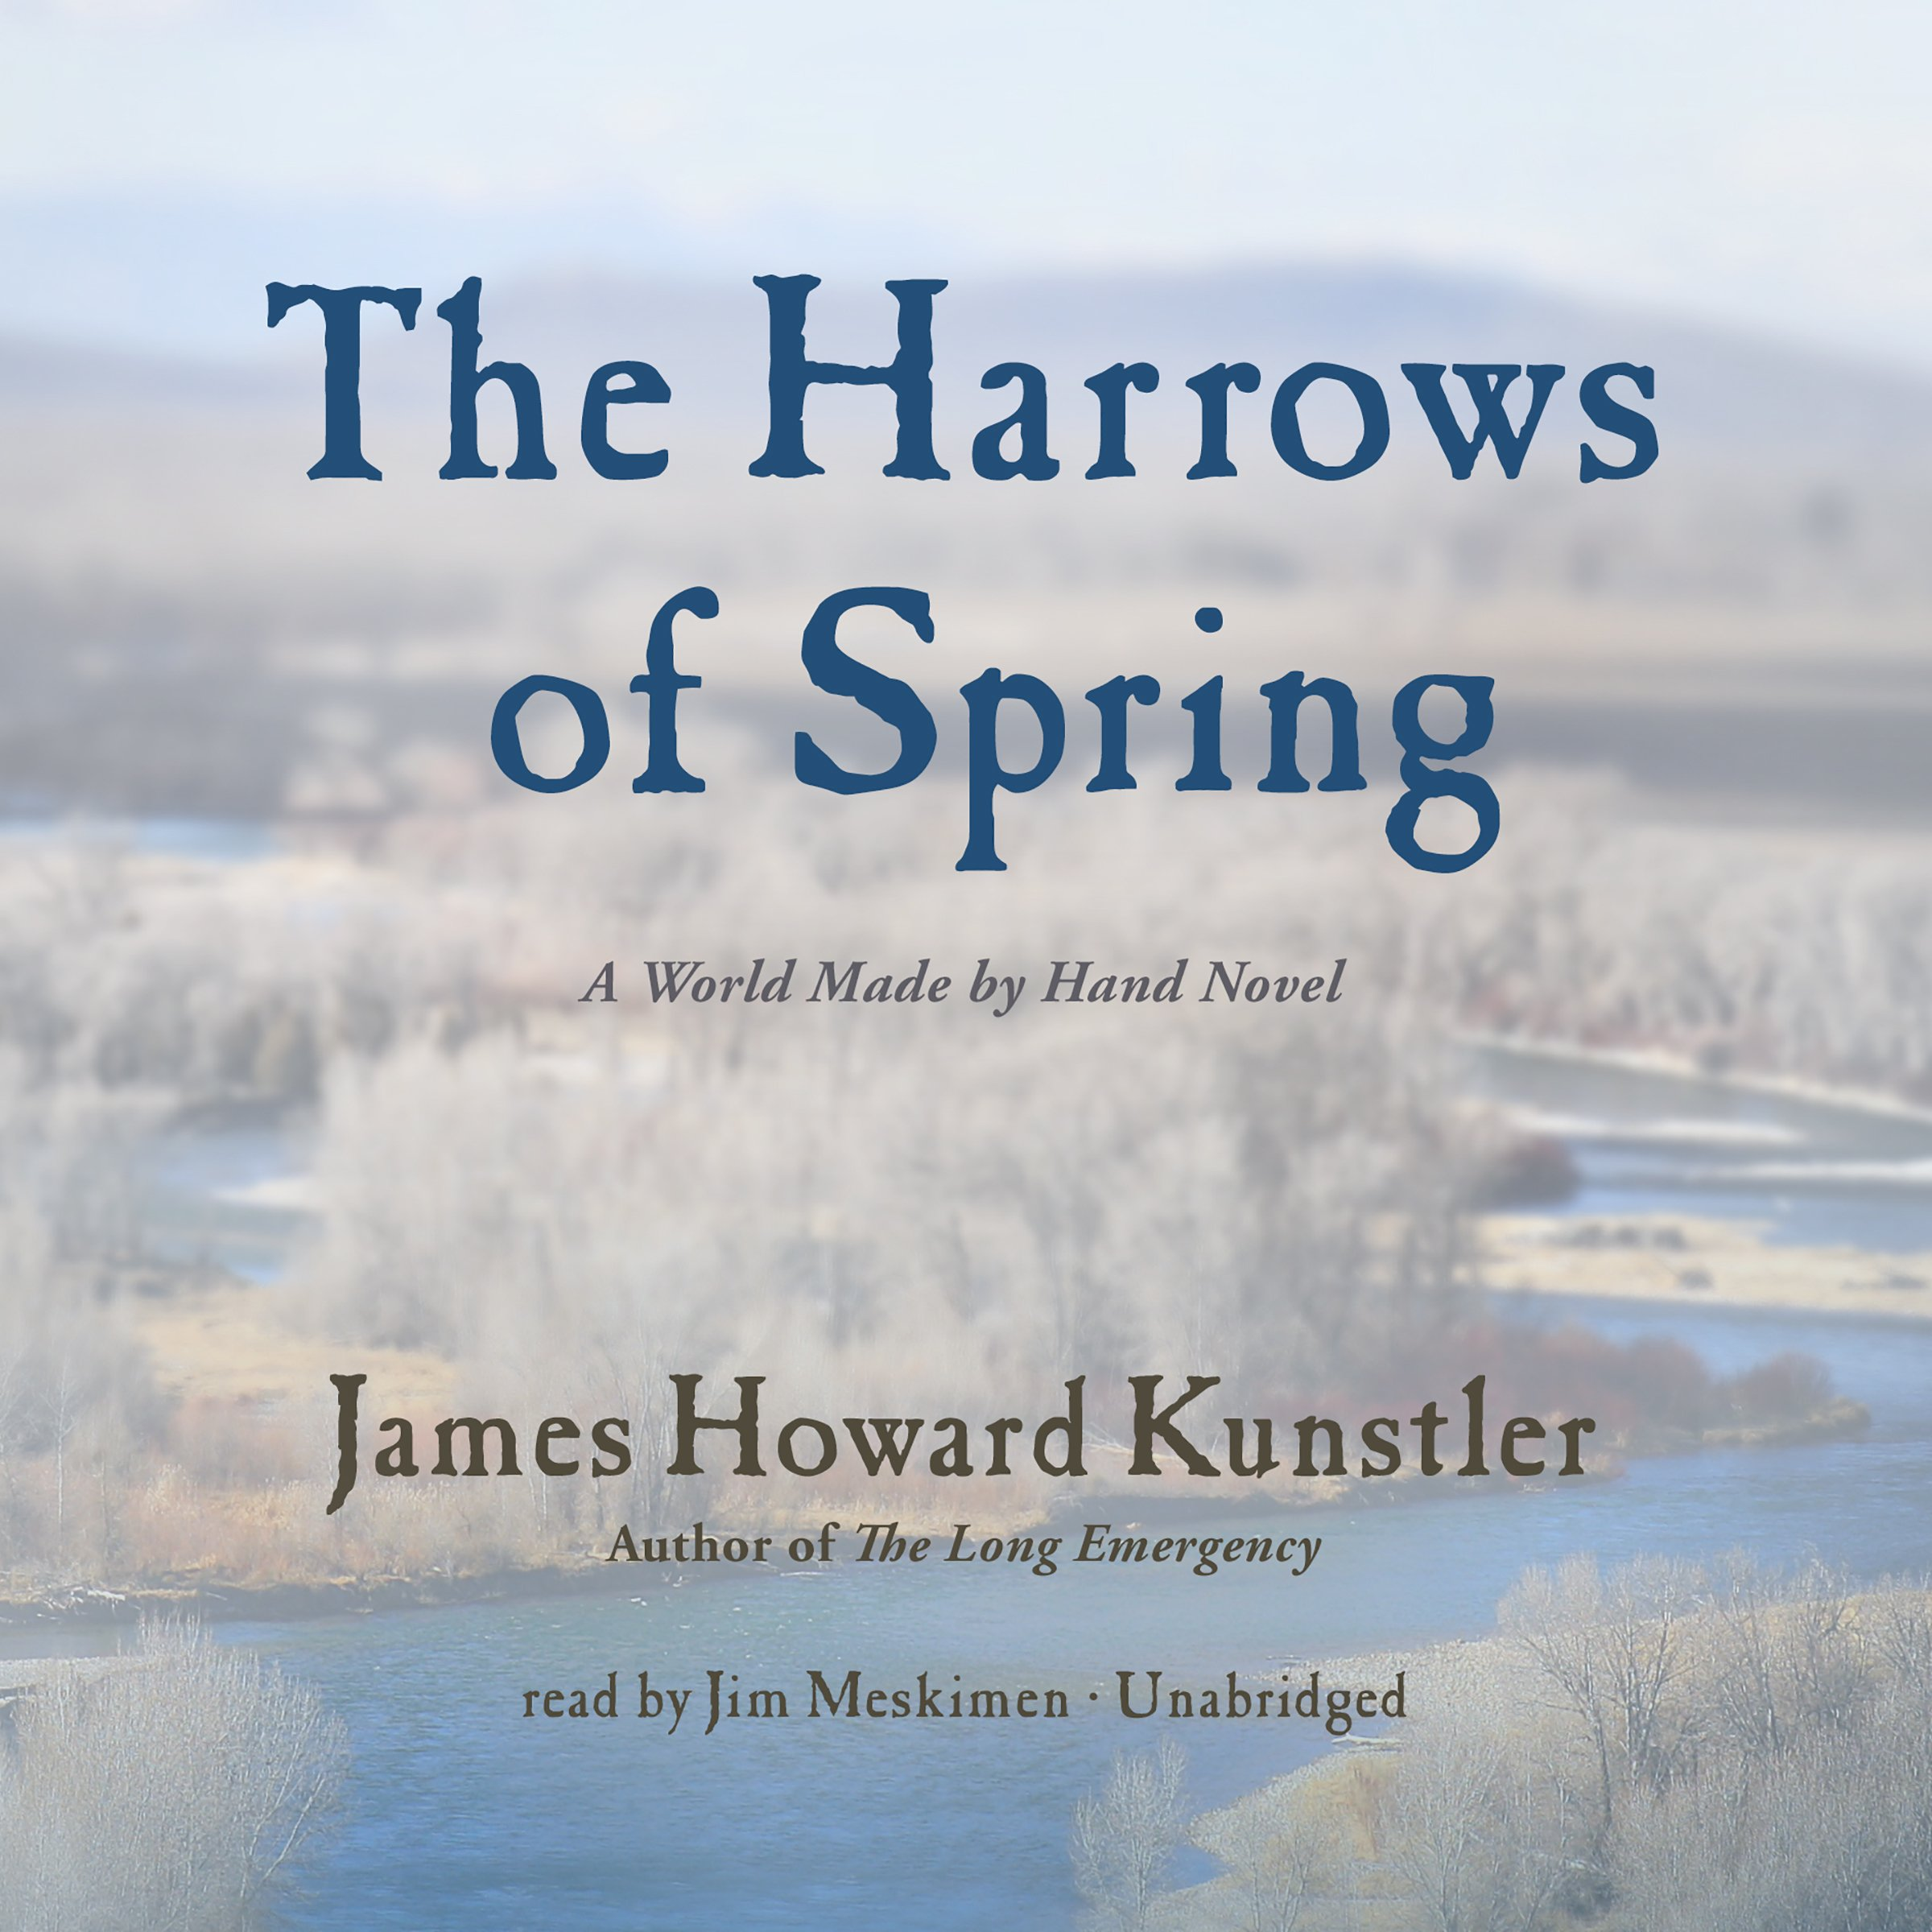 Download The Harrows of Spring: A World Made by Hand Novel  (World Made by Hand Novels, Book 4) ebook